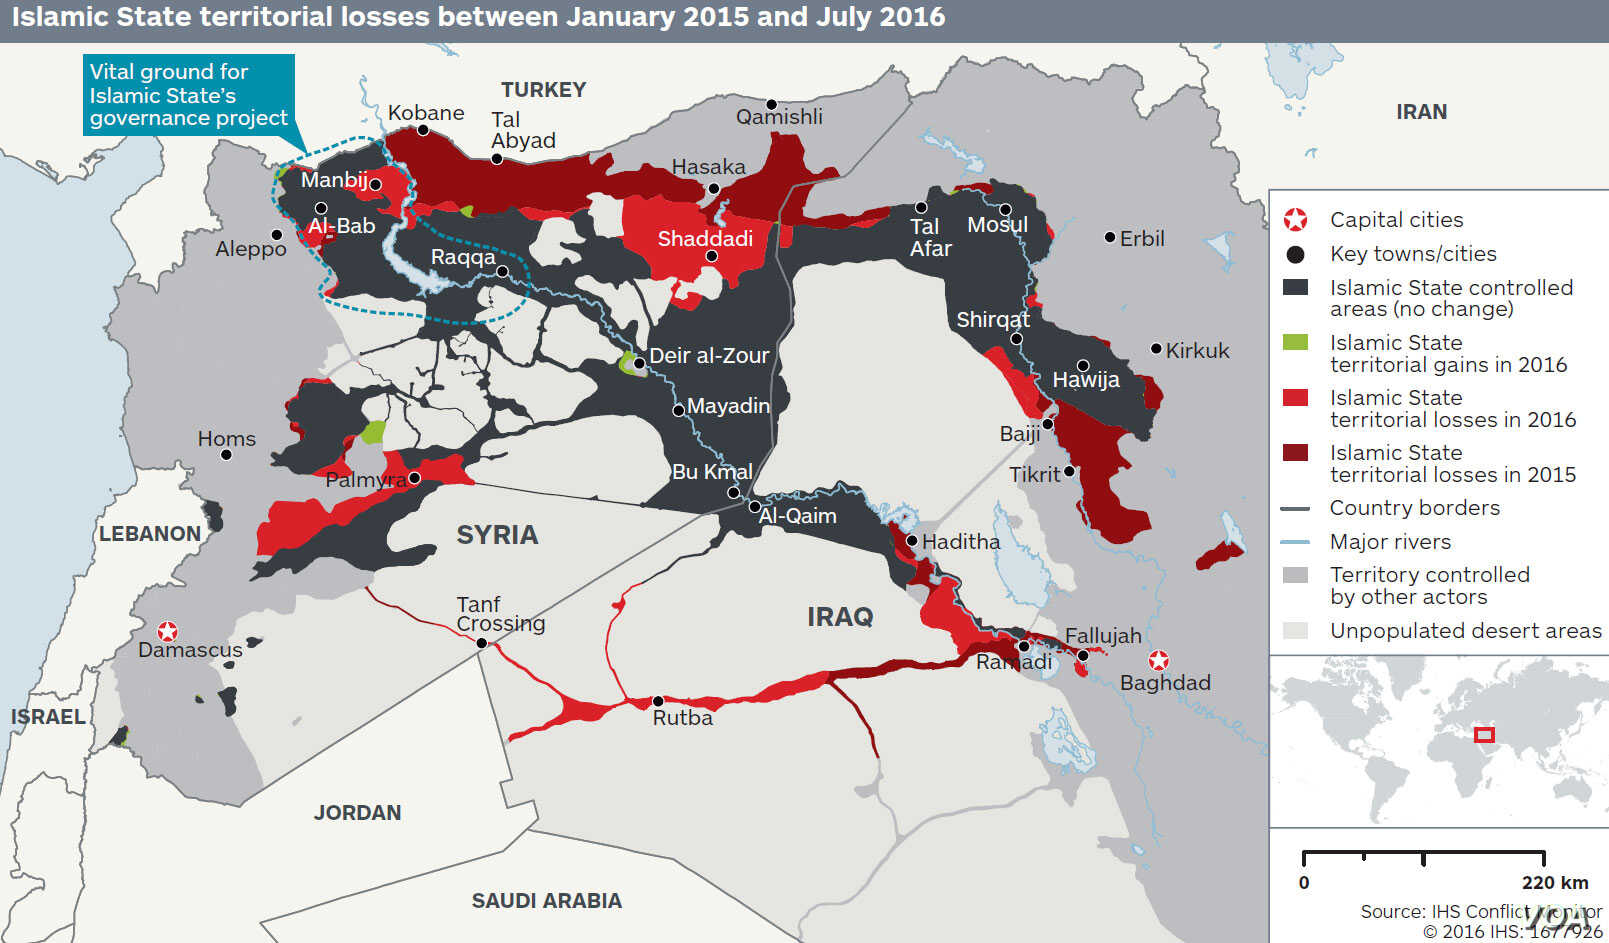 Graphic: Islamic State territorial losses between January 2015 and July 2016 (IHS Conflict Monitor)